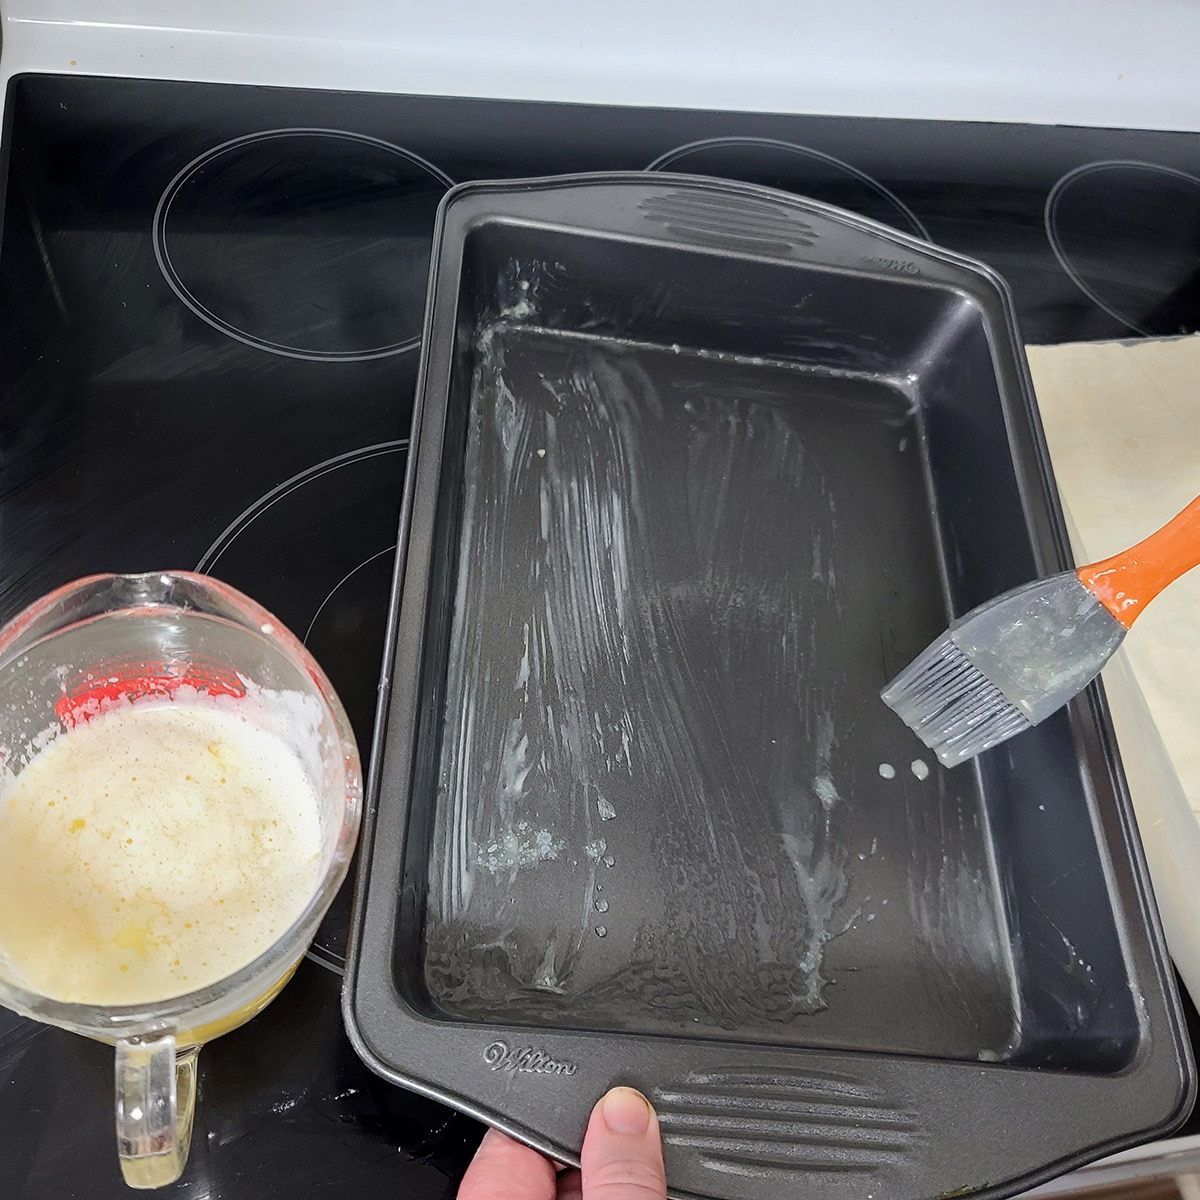 Melted butter is being brushed into a 9 by 13 pan.